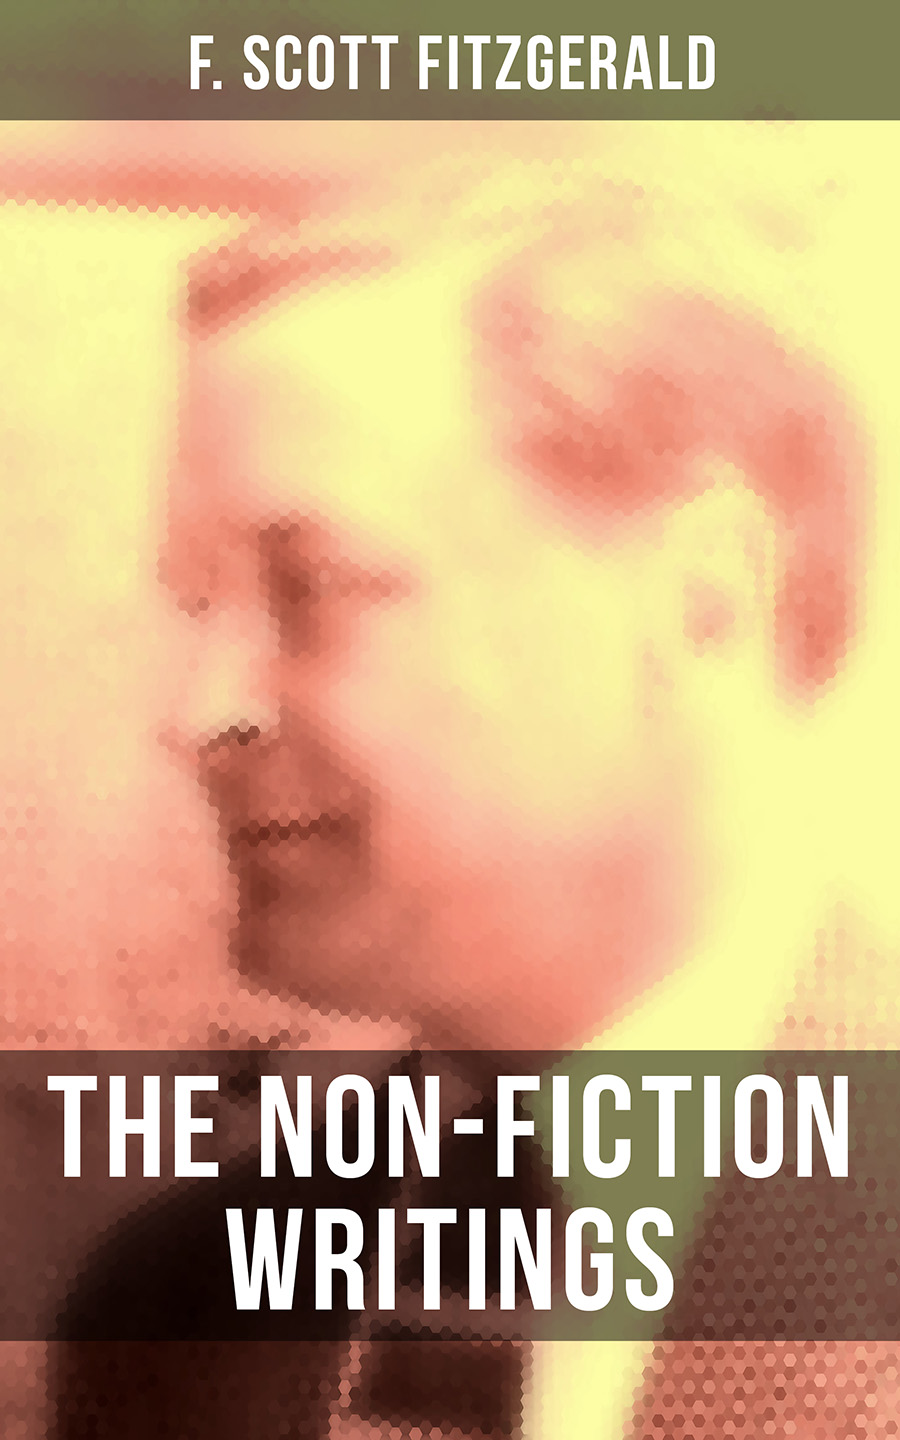 F. Scott Fitzgerald The Non-Fiction Writings of F. Scott Fitzgerald fitzgerald francis scott rdr cd [young adult] great gatsby